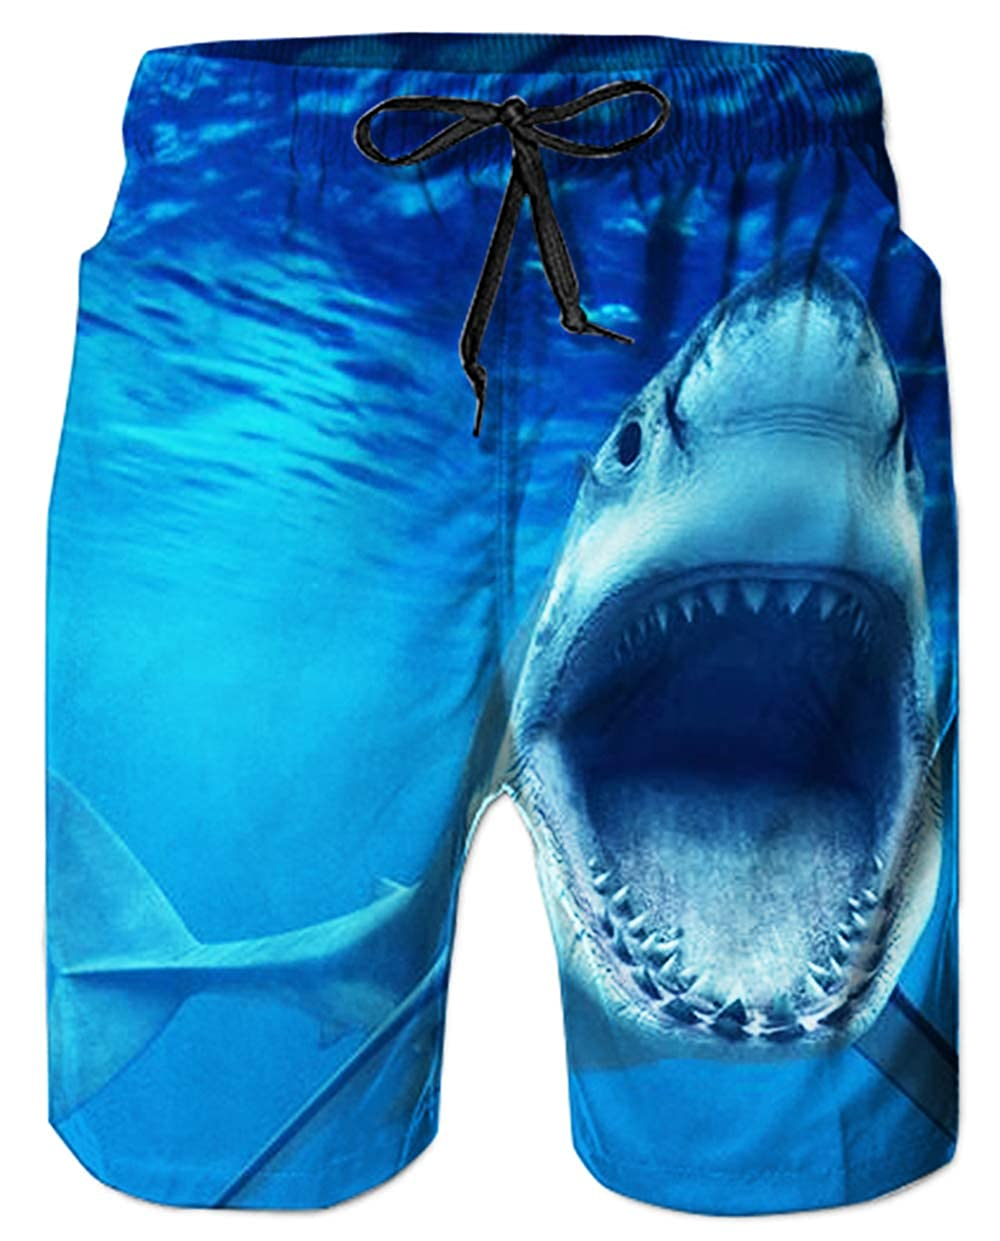 Ahegao Men's Swim Trunks 3D Printed Beach Board Shorts with Pockets Cool Novelty Bathing Suits for Teen Boys